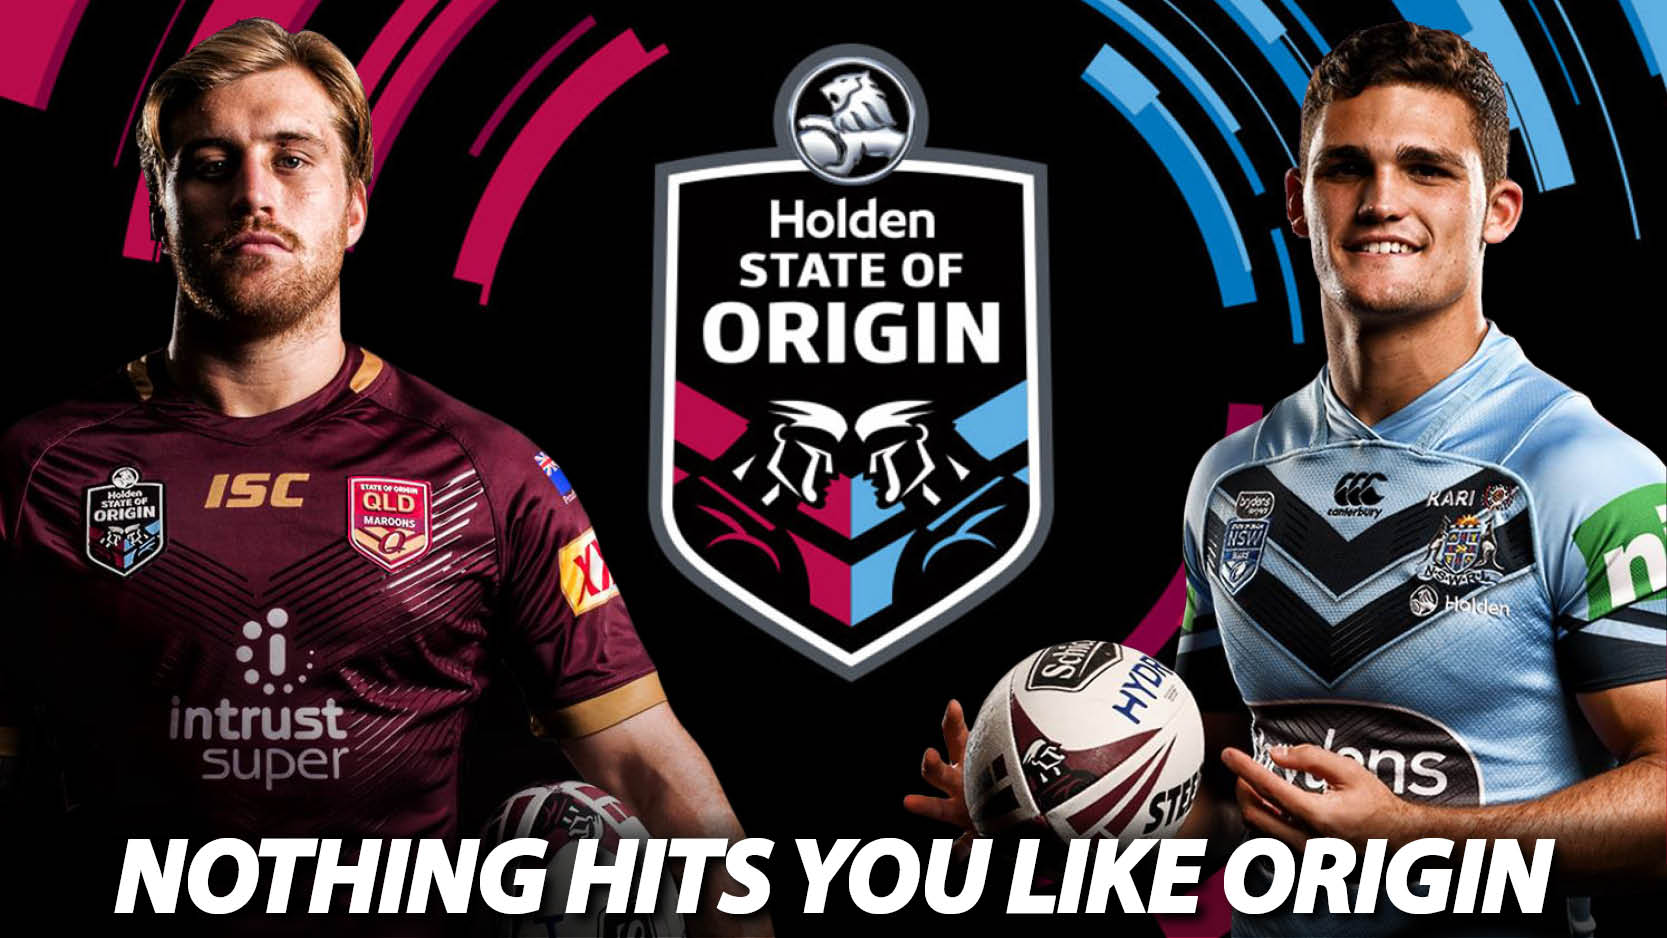 2019_State of Origin Fbook Event Pic.jpg